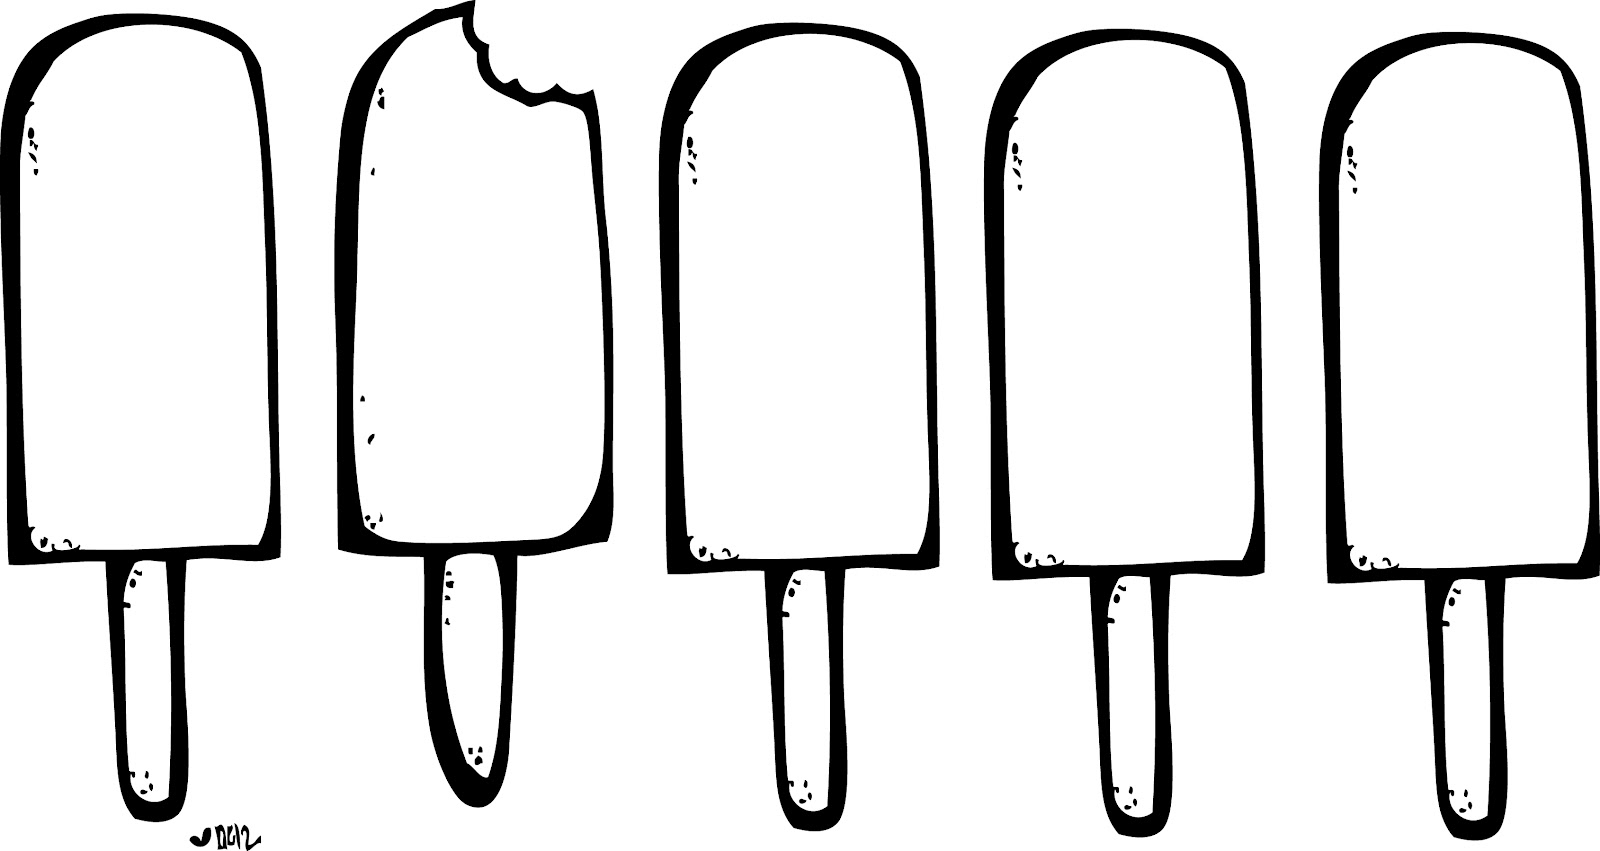 Popsicle clipart black and white 5 » Clipart Station.